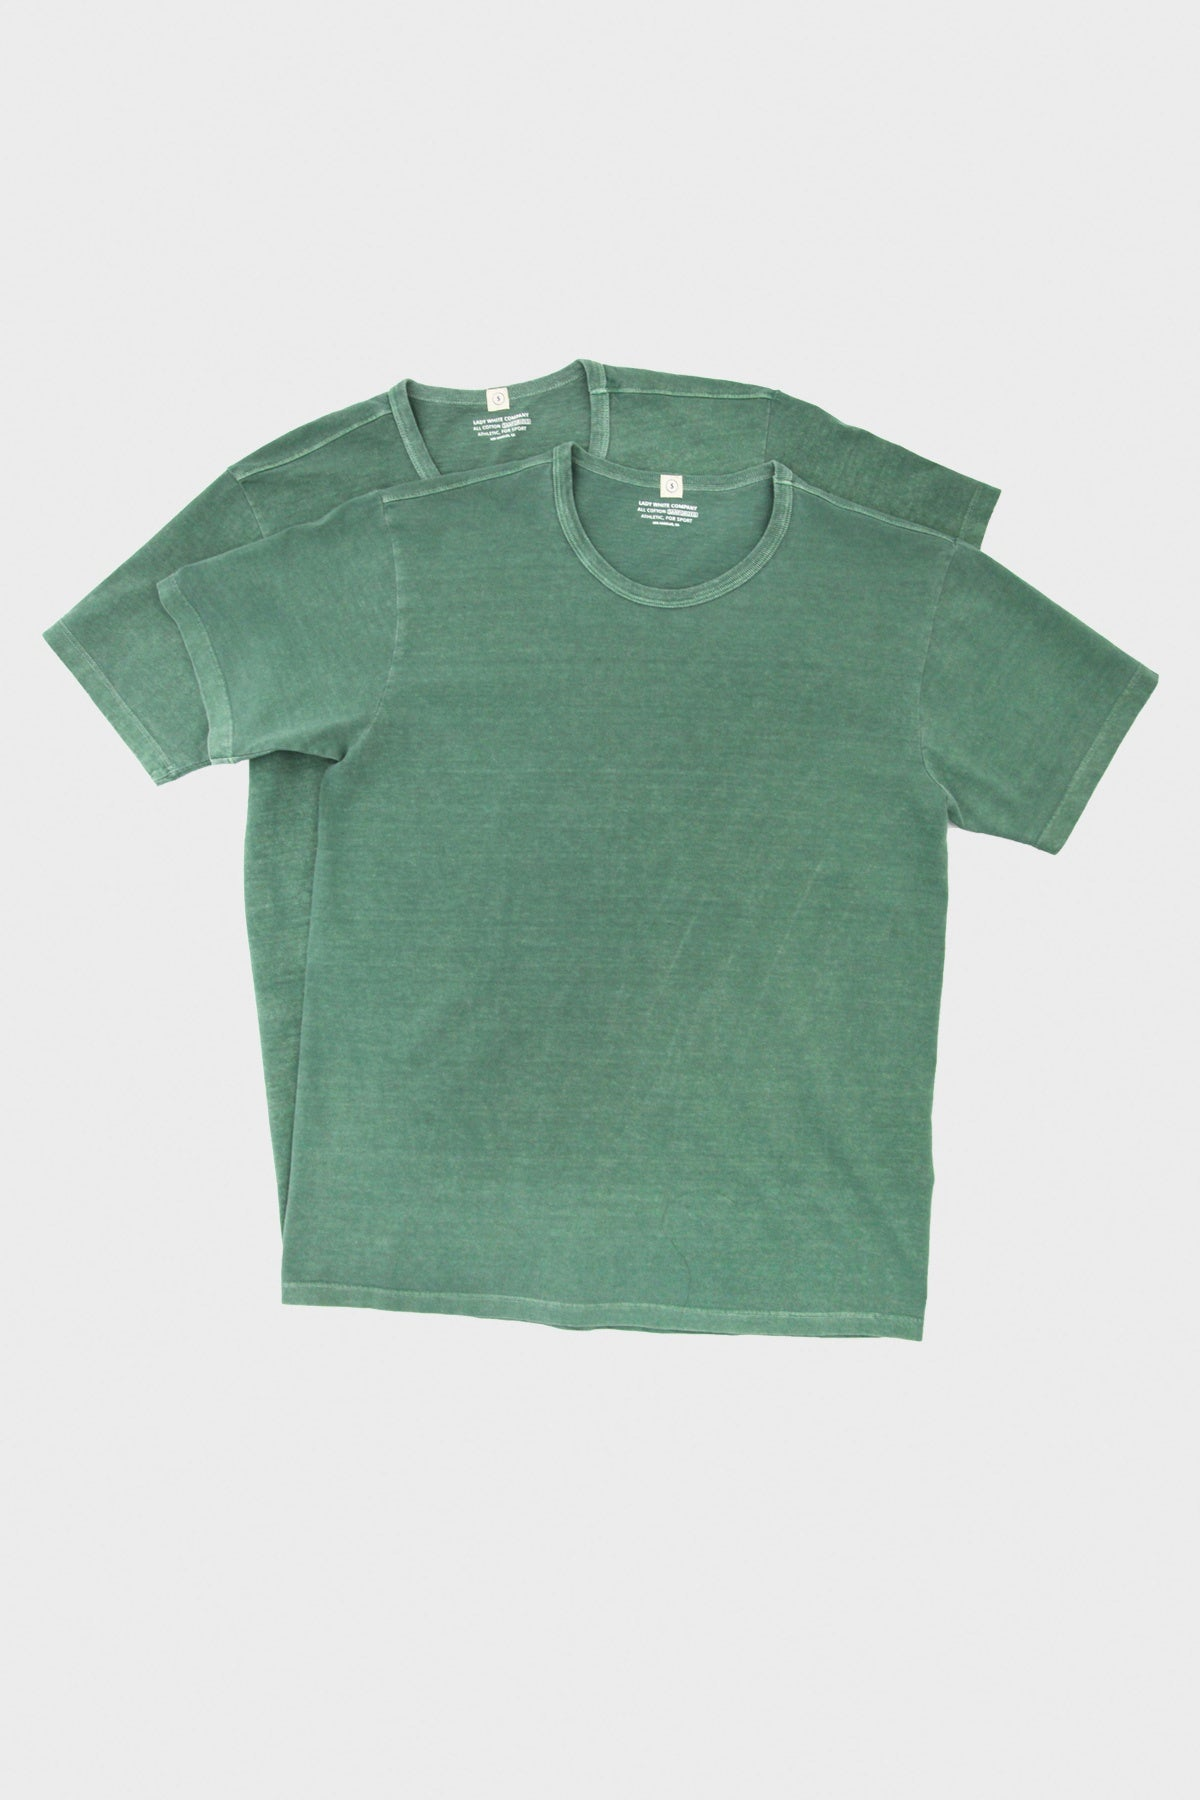 Lady White Co. - Canoe Club Two Pack T-Shirts - Chalk Green - Canoe Club